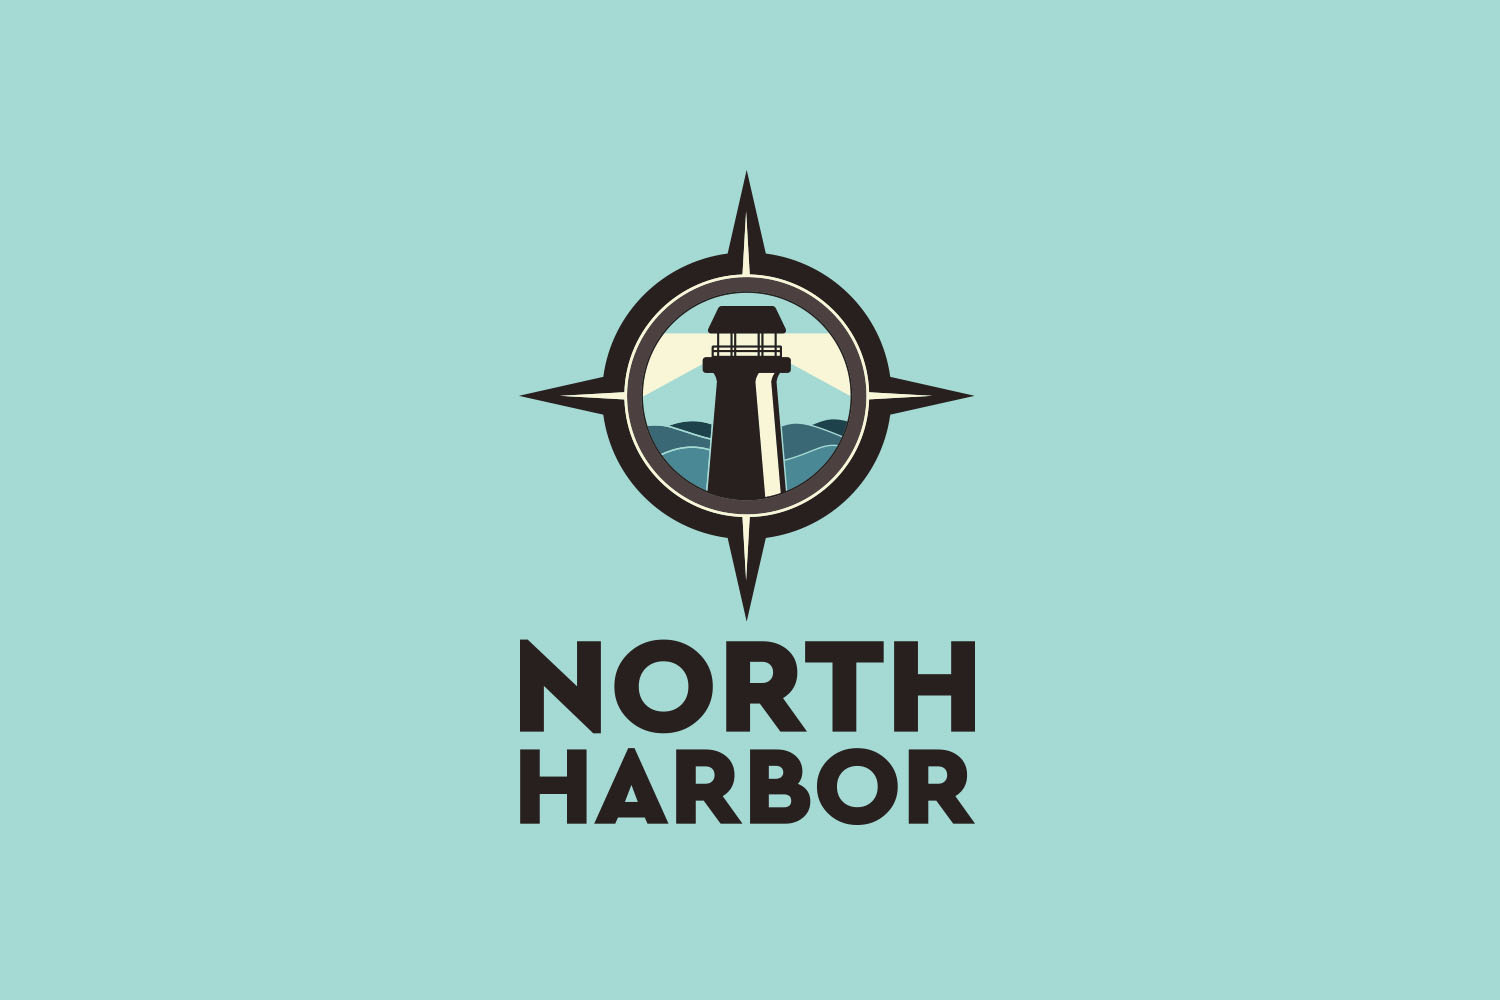 North Harbor Graphic Design & Branding